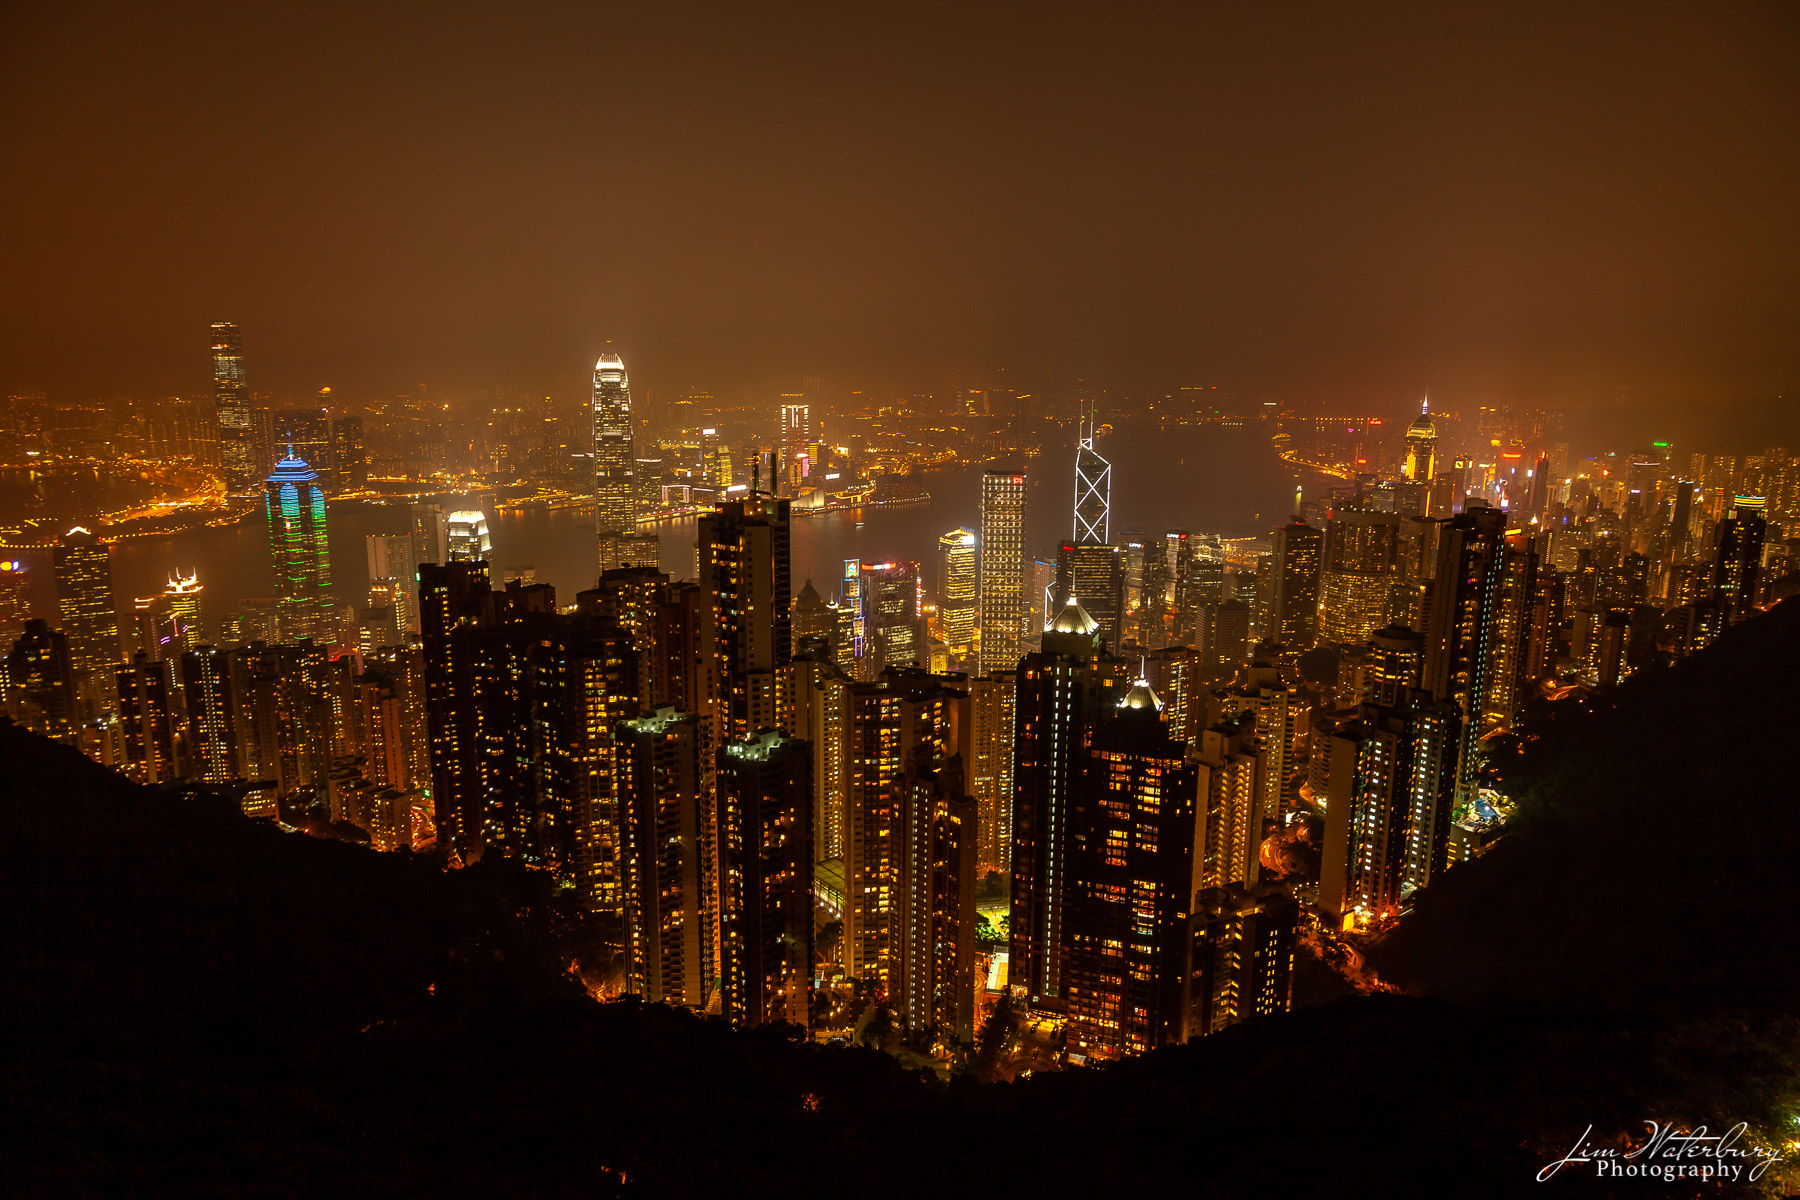 Night view of Hong Kong Island from Victoria Peak just after sunset.